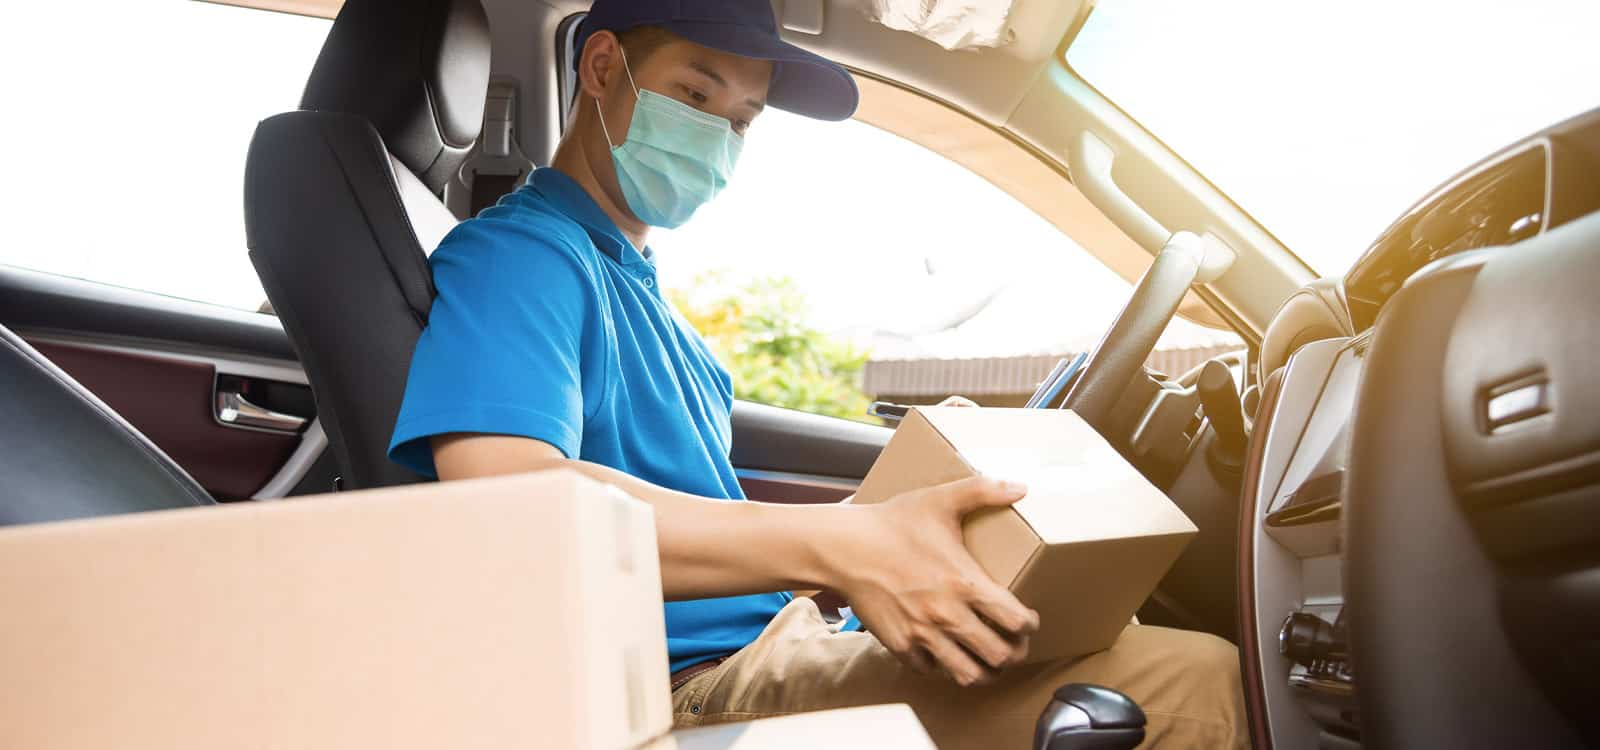 A person in a mask and black hat handles a box in a car, indicating they pursued the small business idea of becoming a medical courier